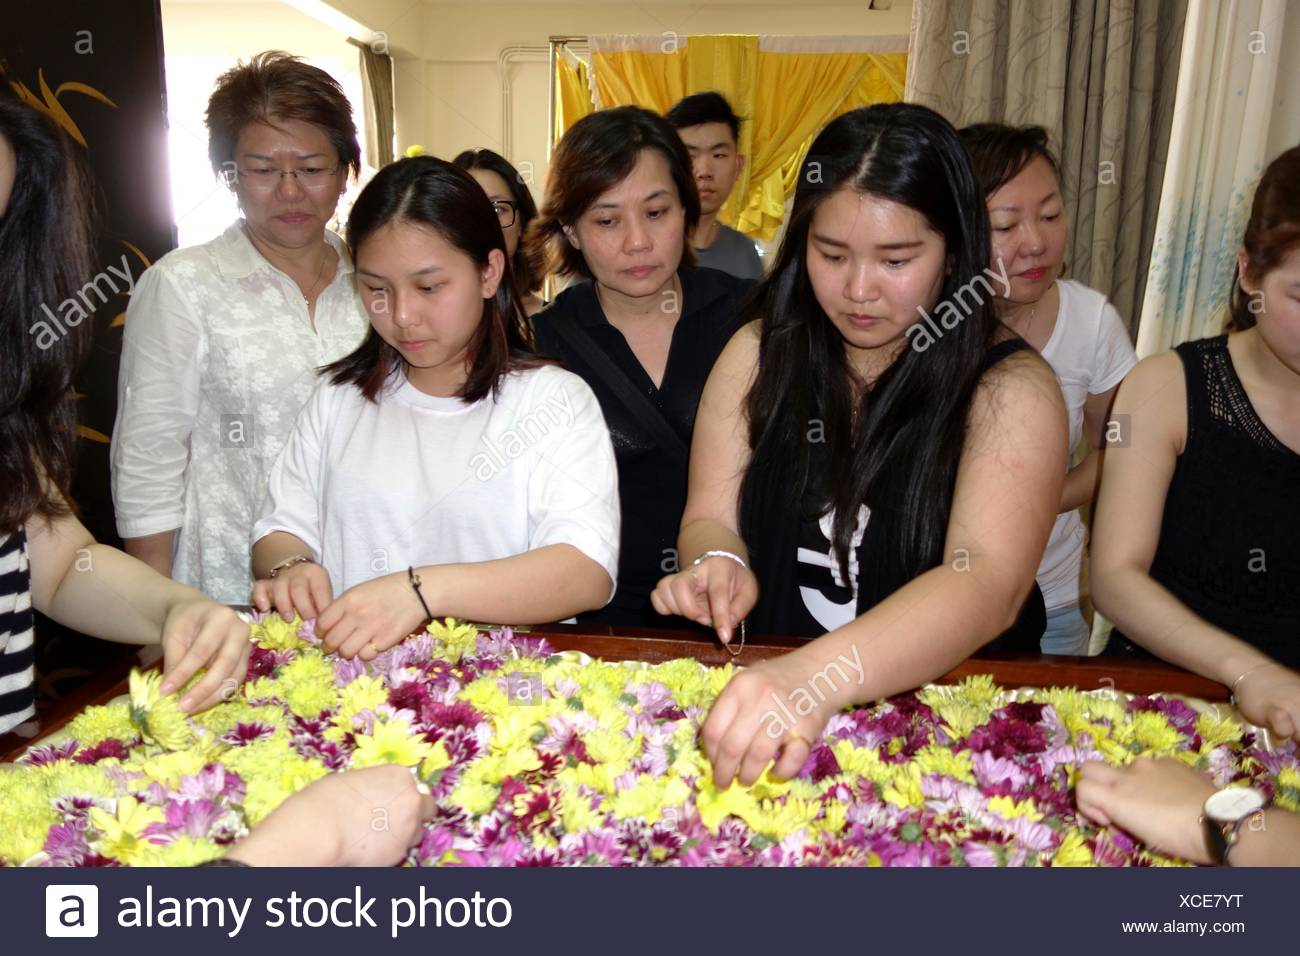 Funeral Coffin Carrying Flowers Stock Photos Funeral Coffin